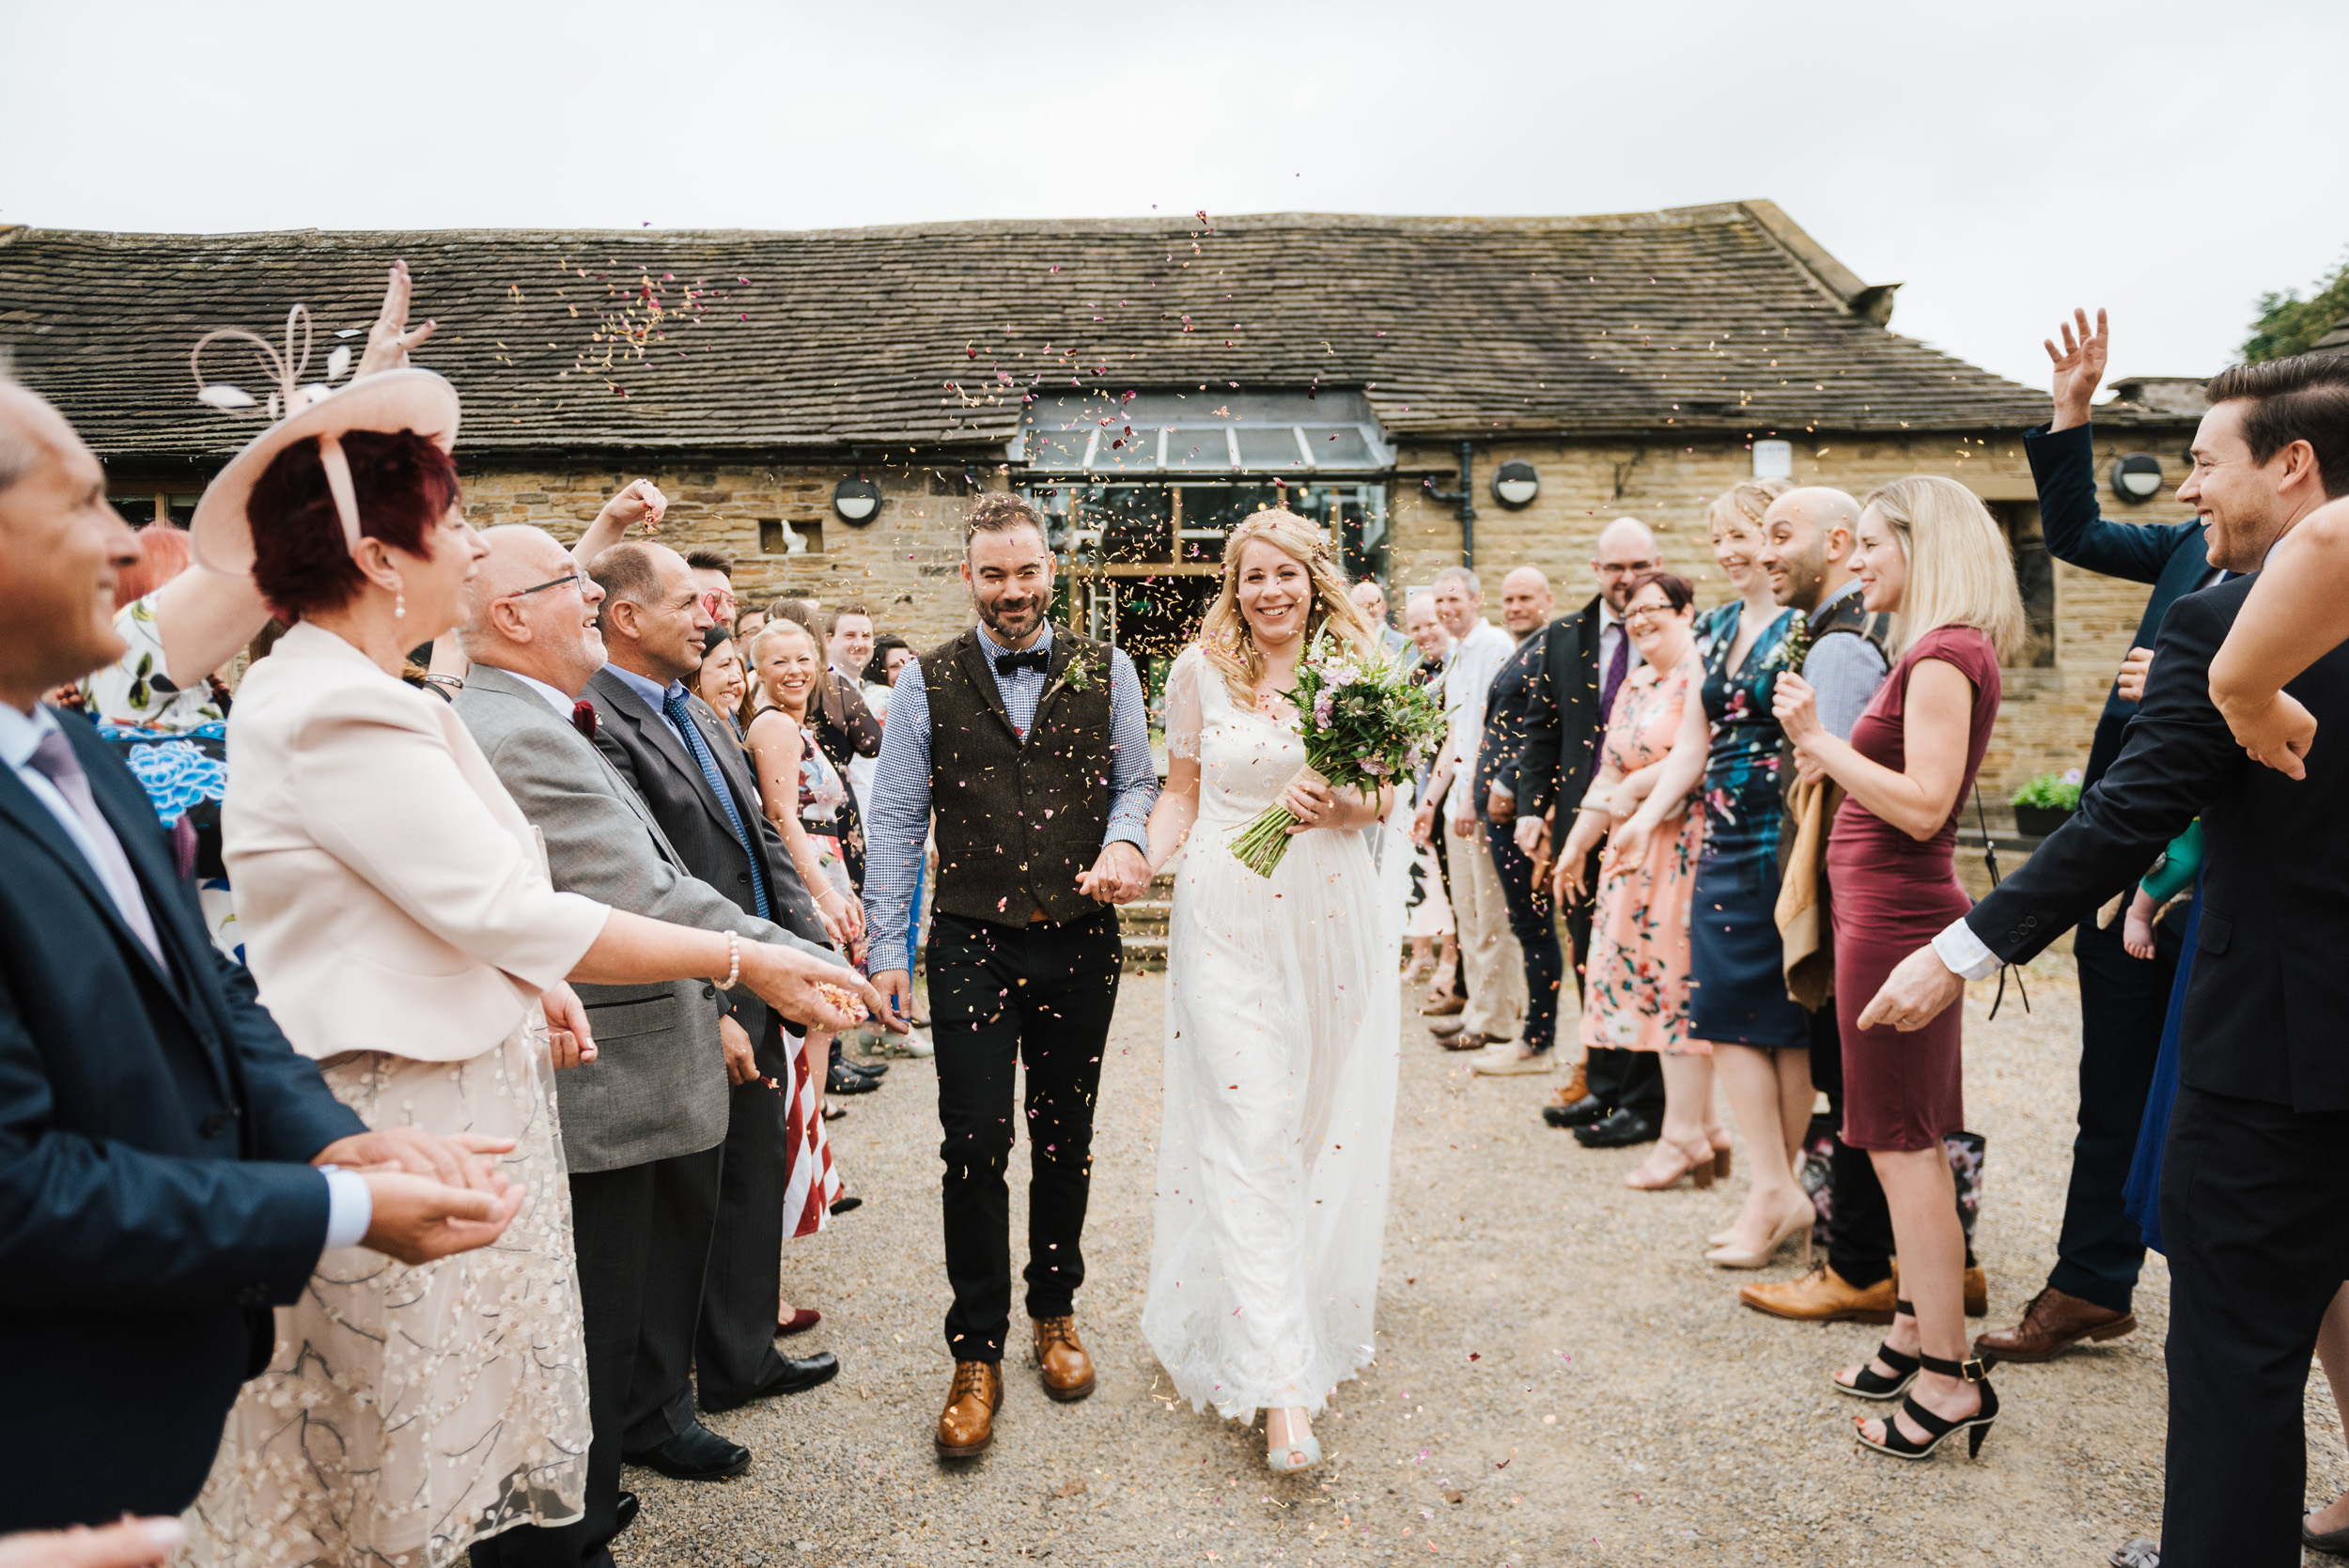 Lace-Wedding-Gown-Rustic-Barn-Wedding-Yorkshire-Kate-Beaumont-11.jpg